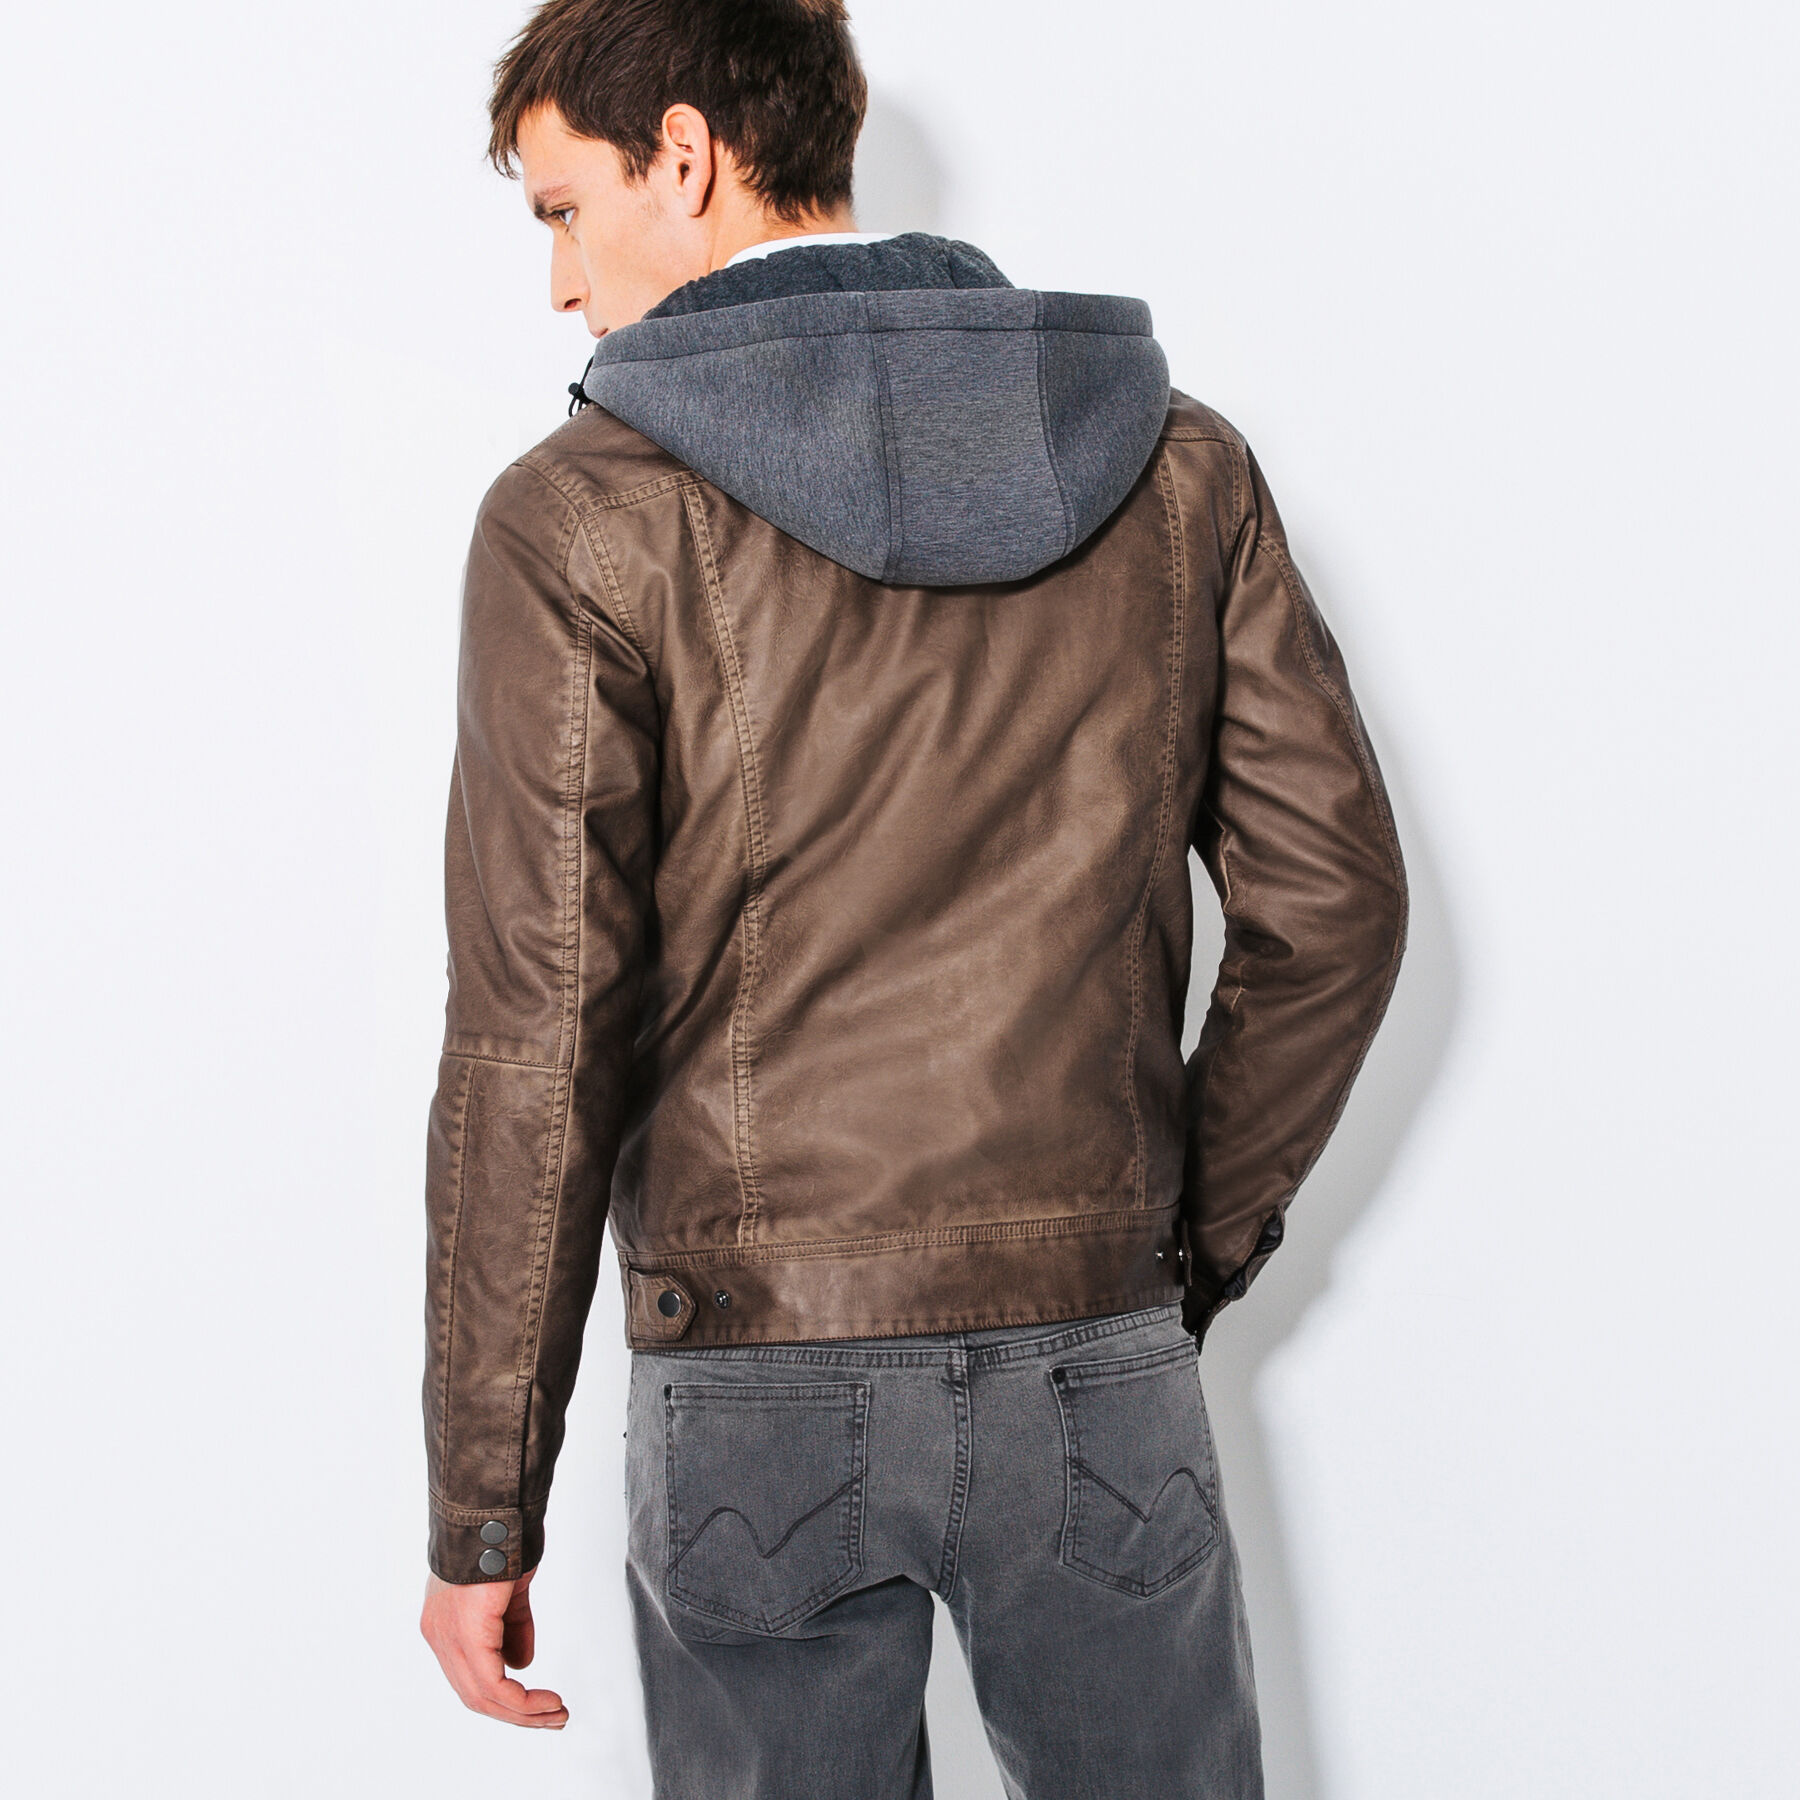 Veste simili cuir marron jules